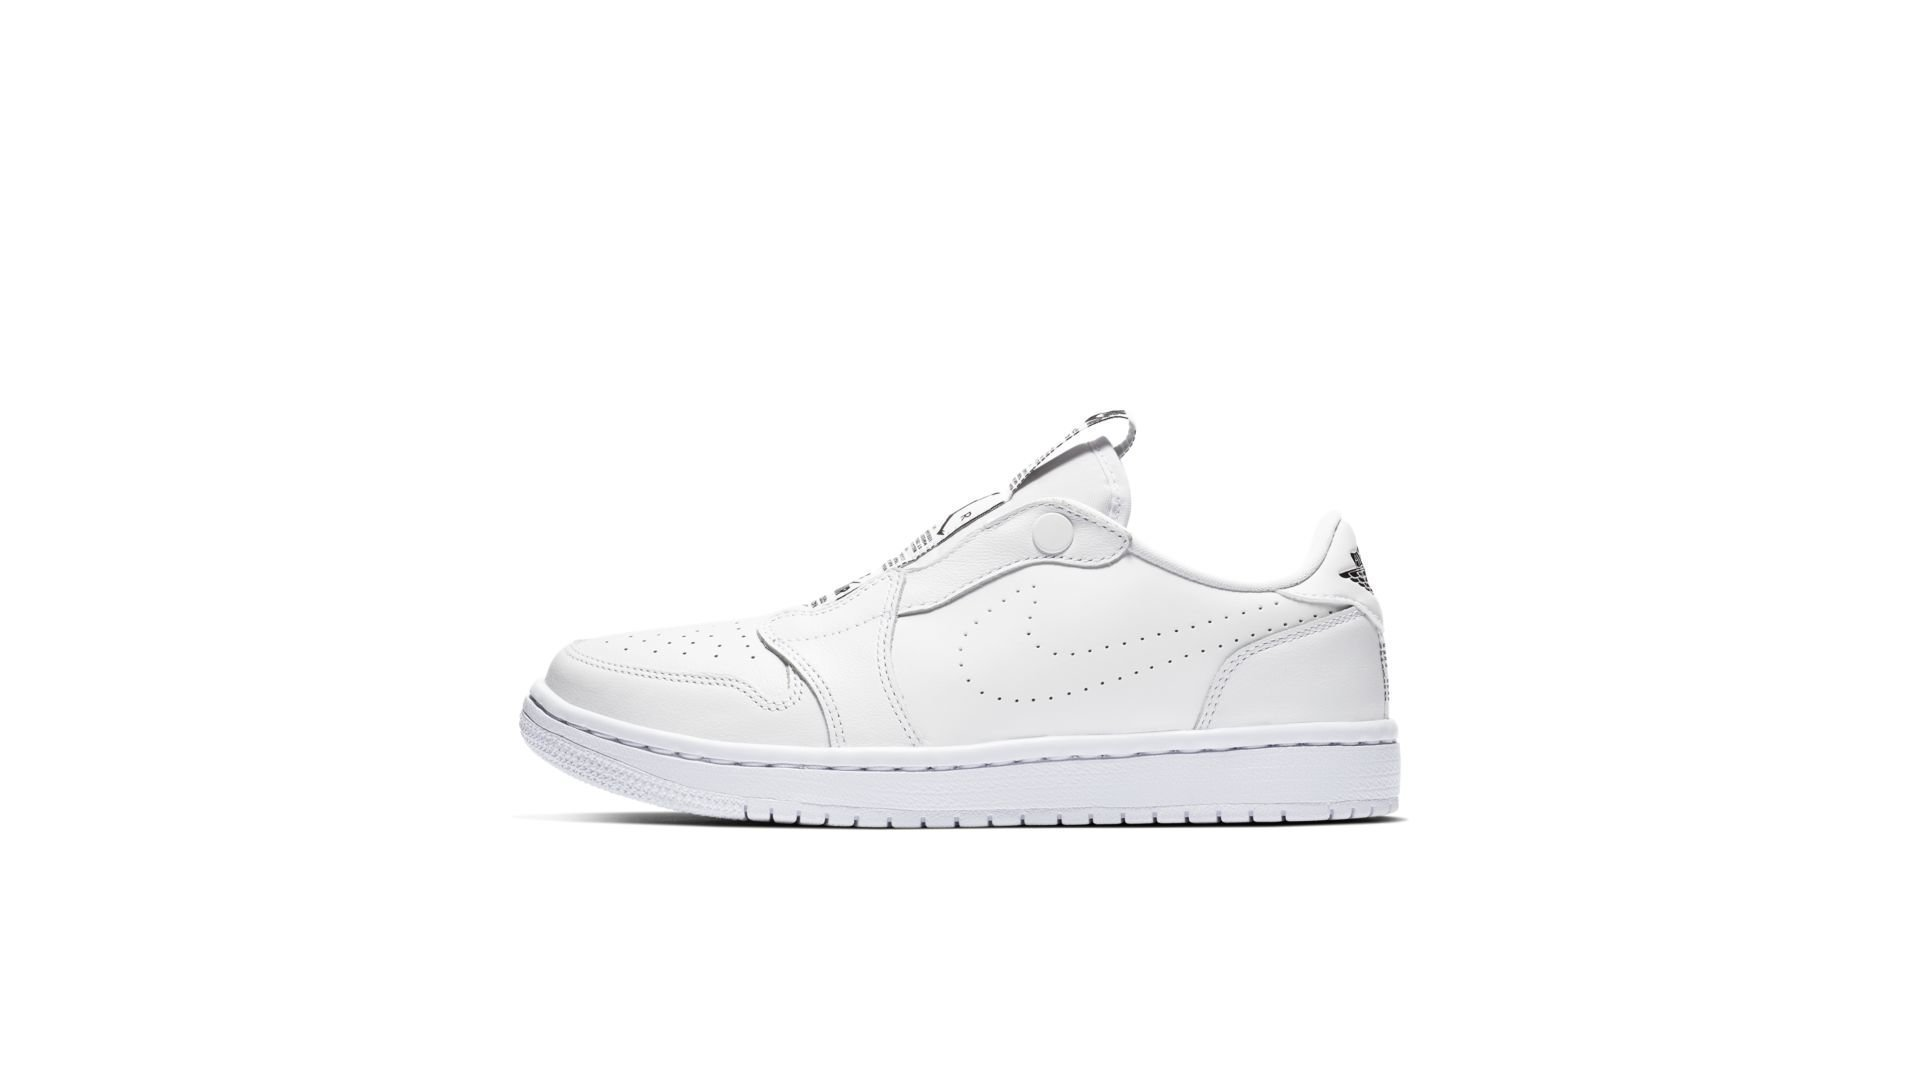 Jordan 1 Retro Low Slip White (W) (AV3918-100)